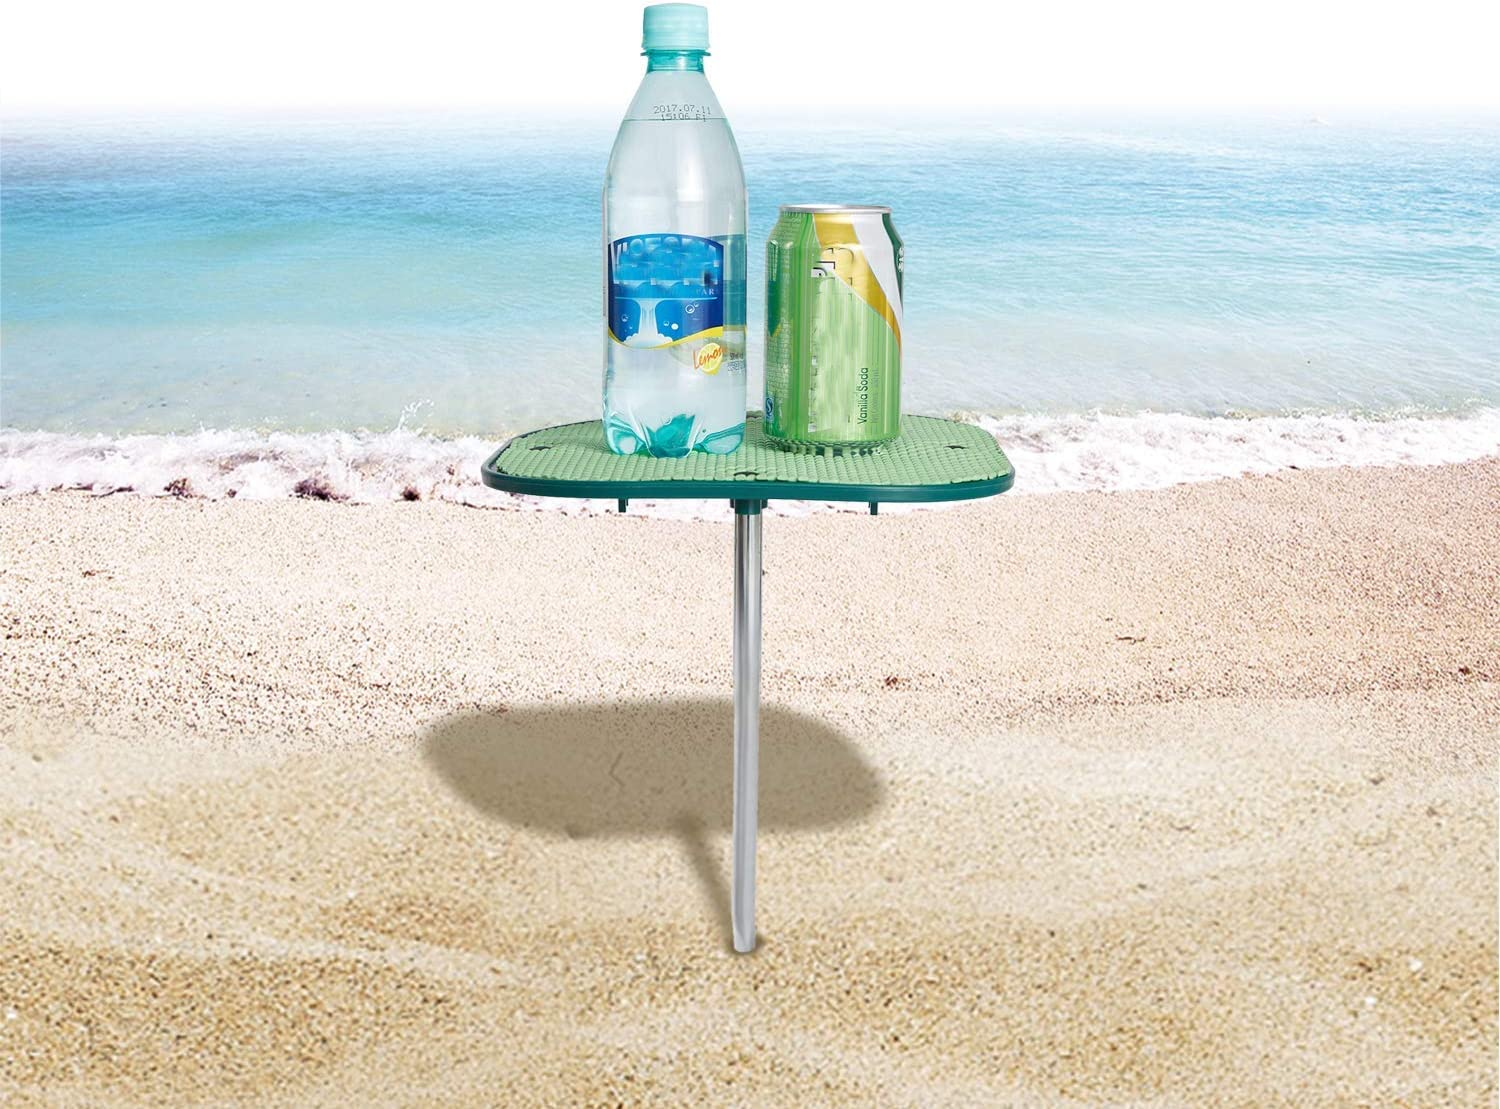 WEJOY Small Portable Personal Beach Tables for Sand, No-Slip Surface Prevents Spills and Slips, Blue